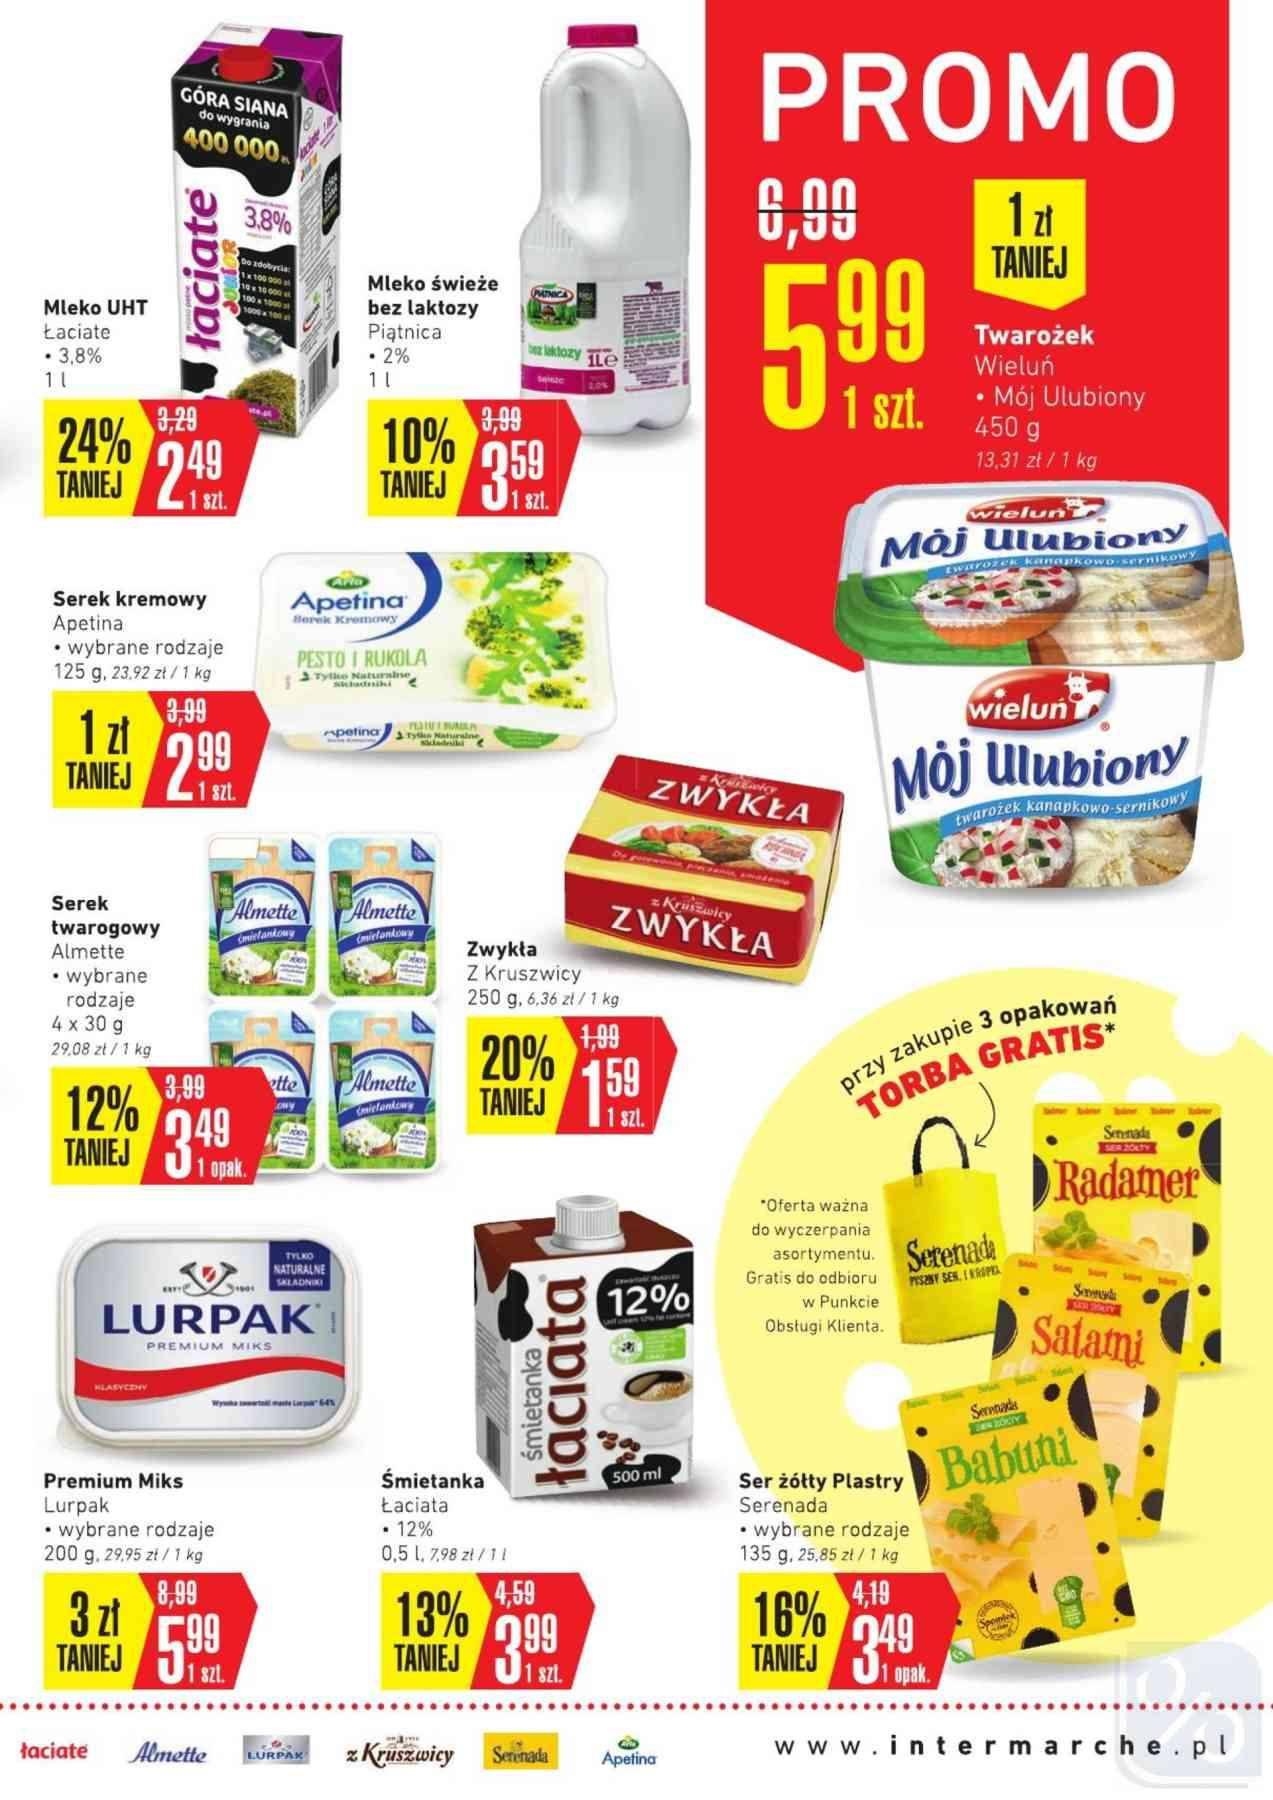 Gazetka promocyjna Intermarche do 12/11/2018 str.9